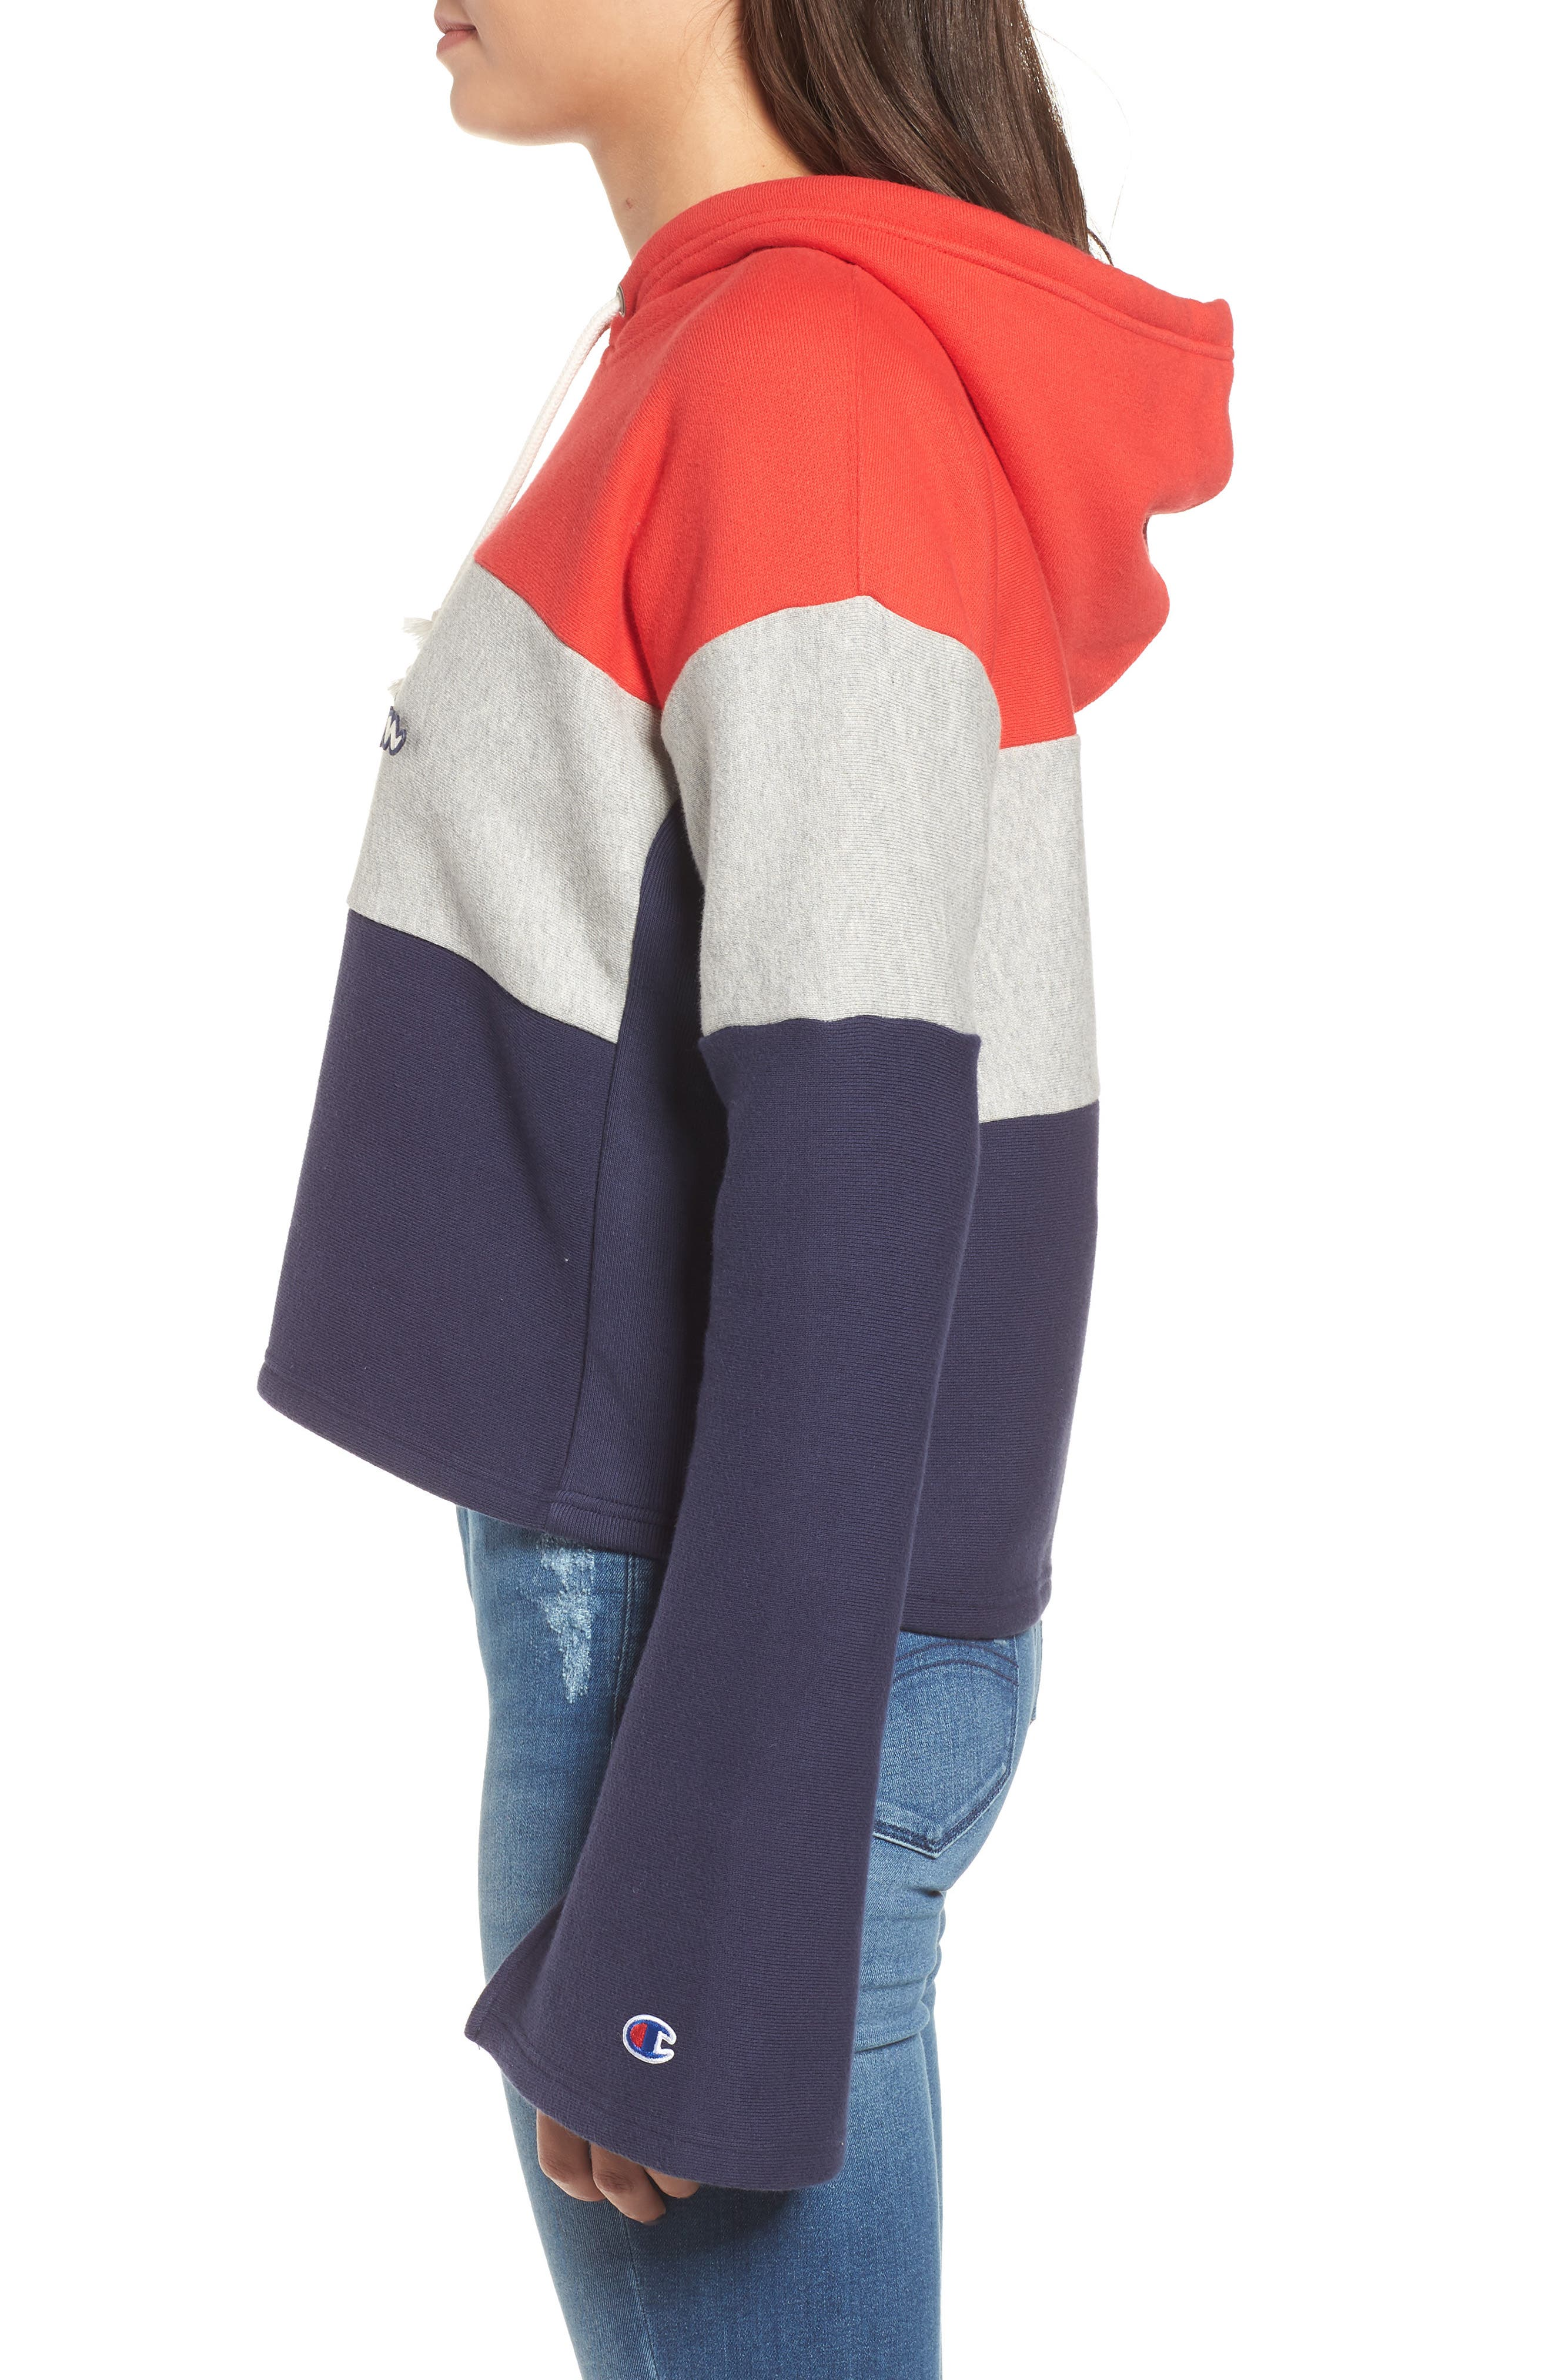 Colorblock Hoodie,                             Alternate thumbnail 3, color,                             RED SPK/ OXFRD GRY/ IMPIND